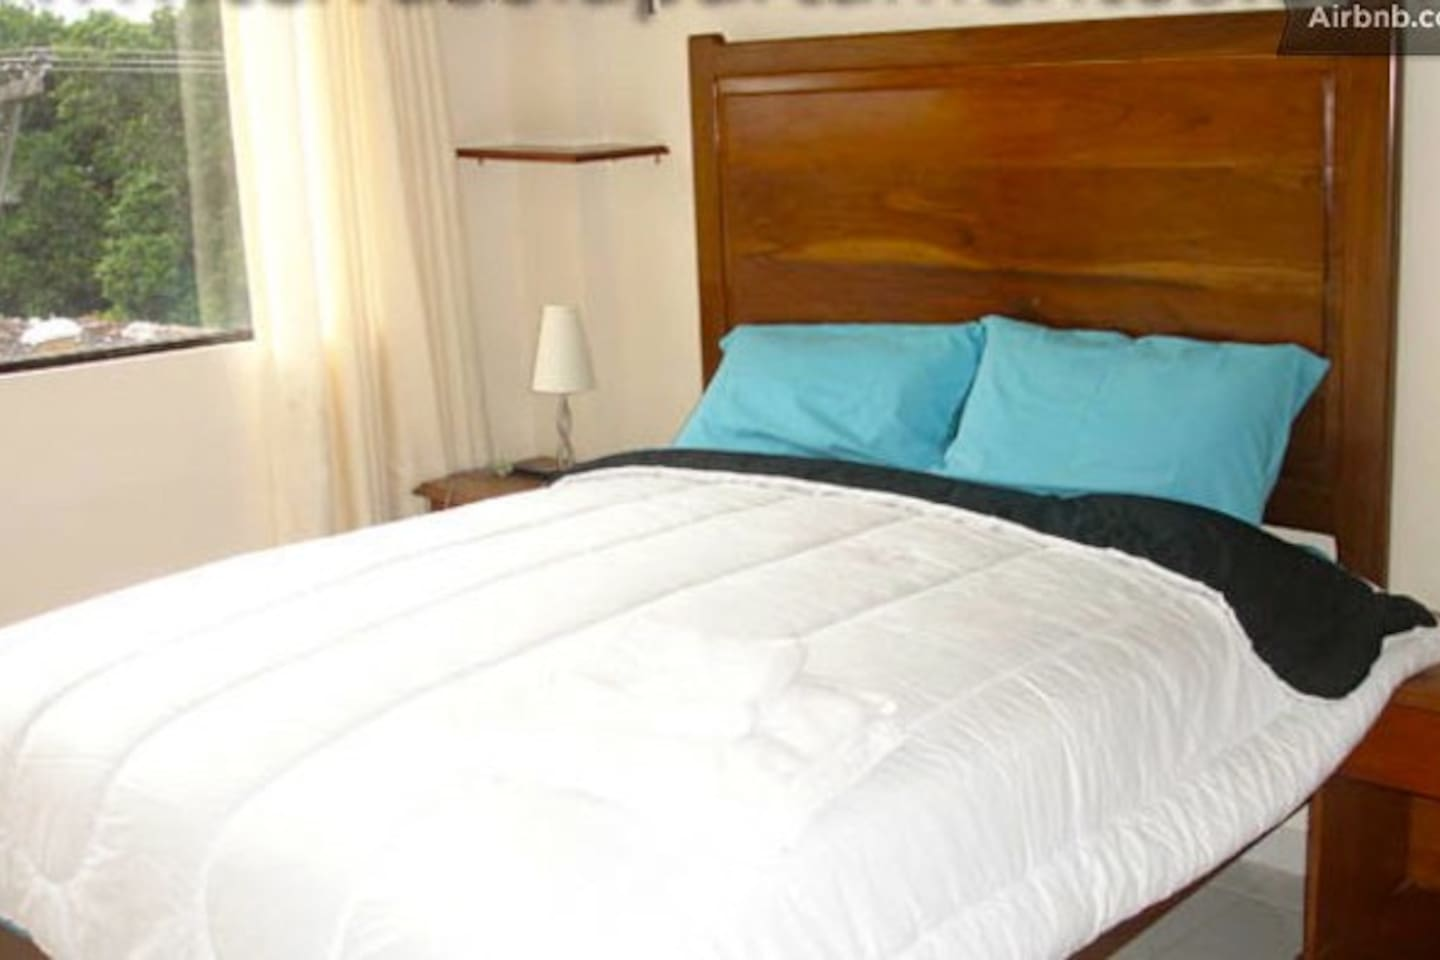 our king size bed   with all the confortb you need